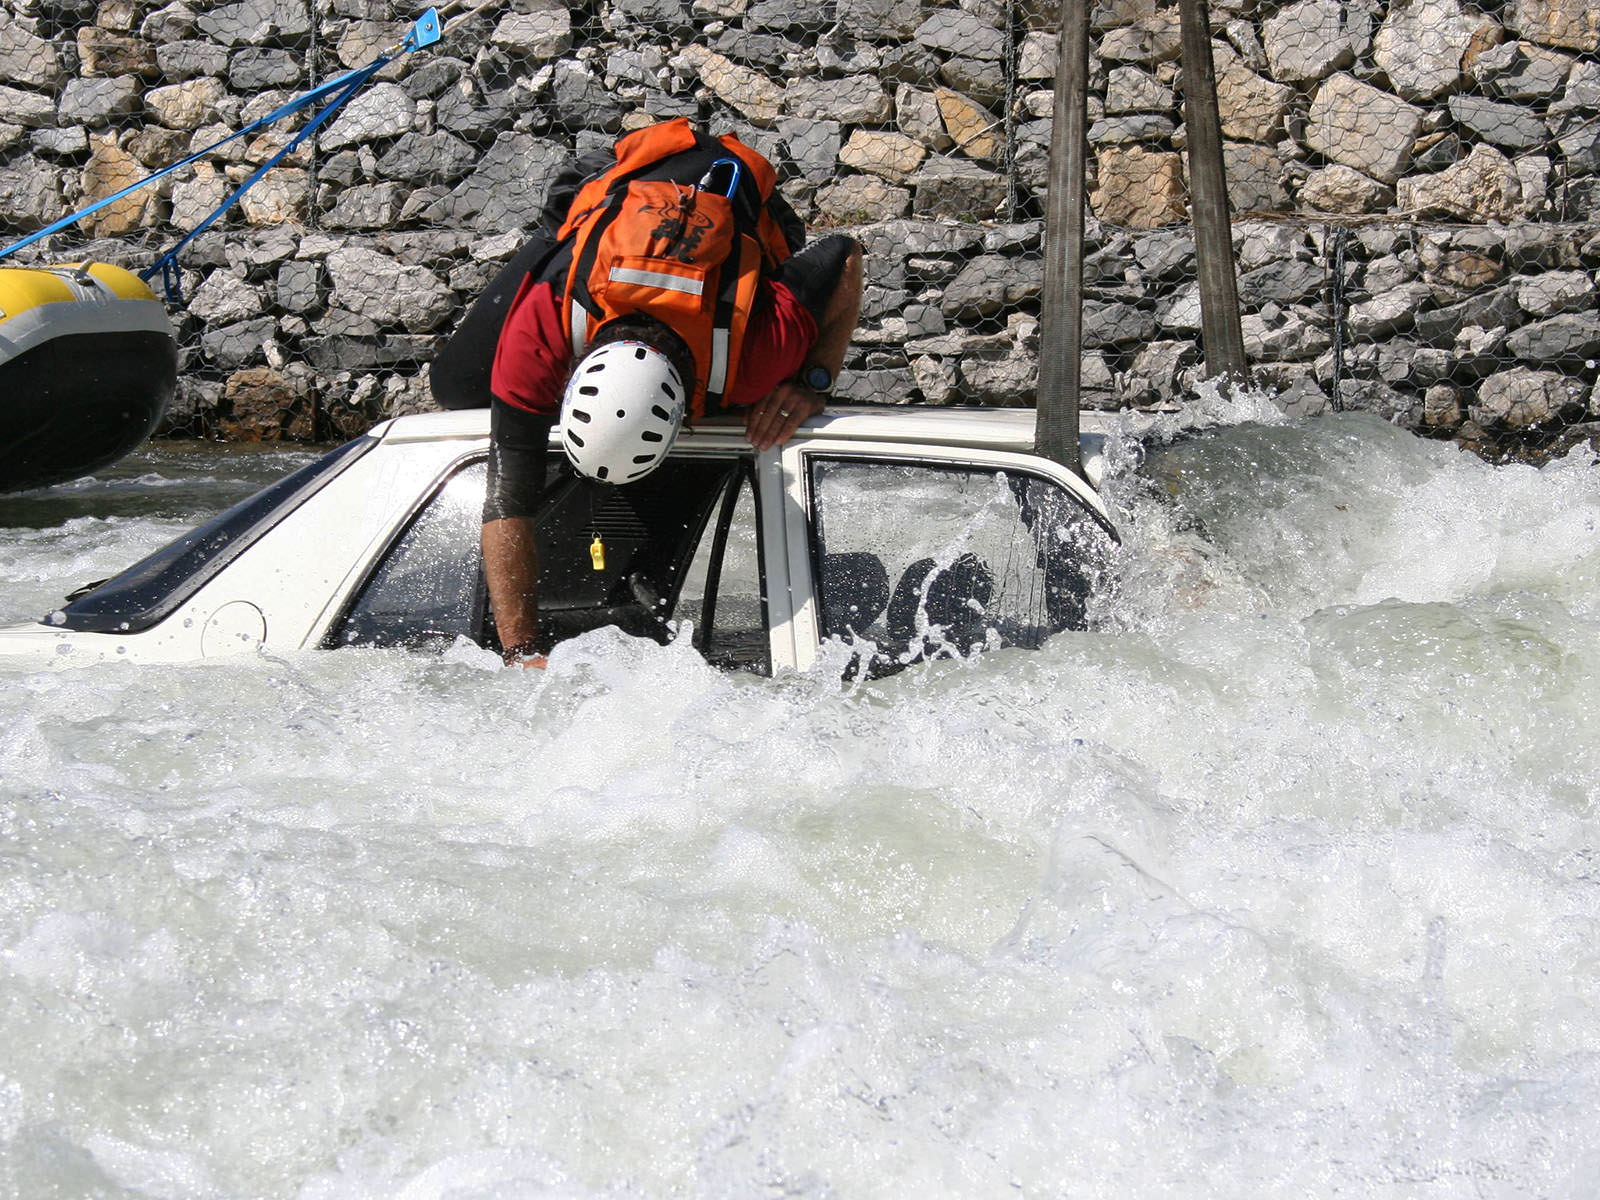 Rescues from Vehicles in Water (RVW)